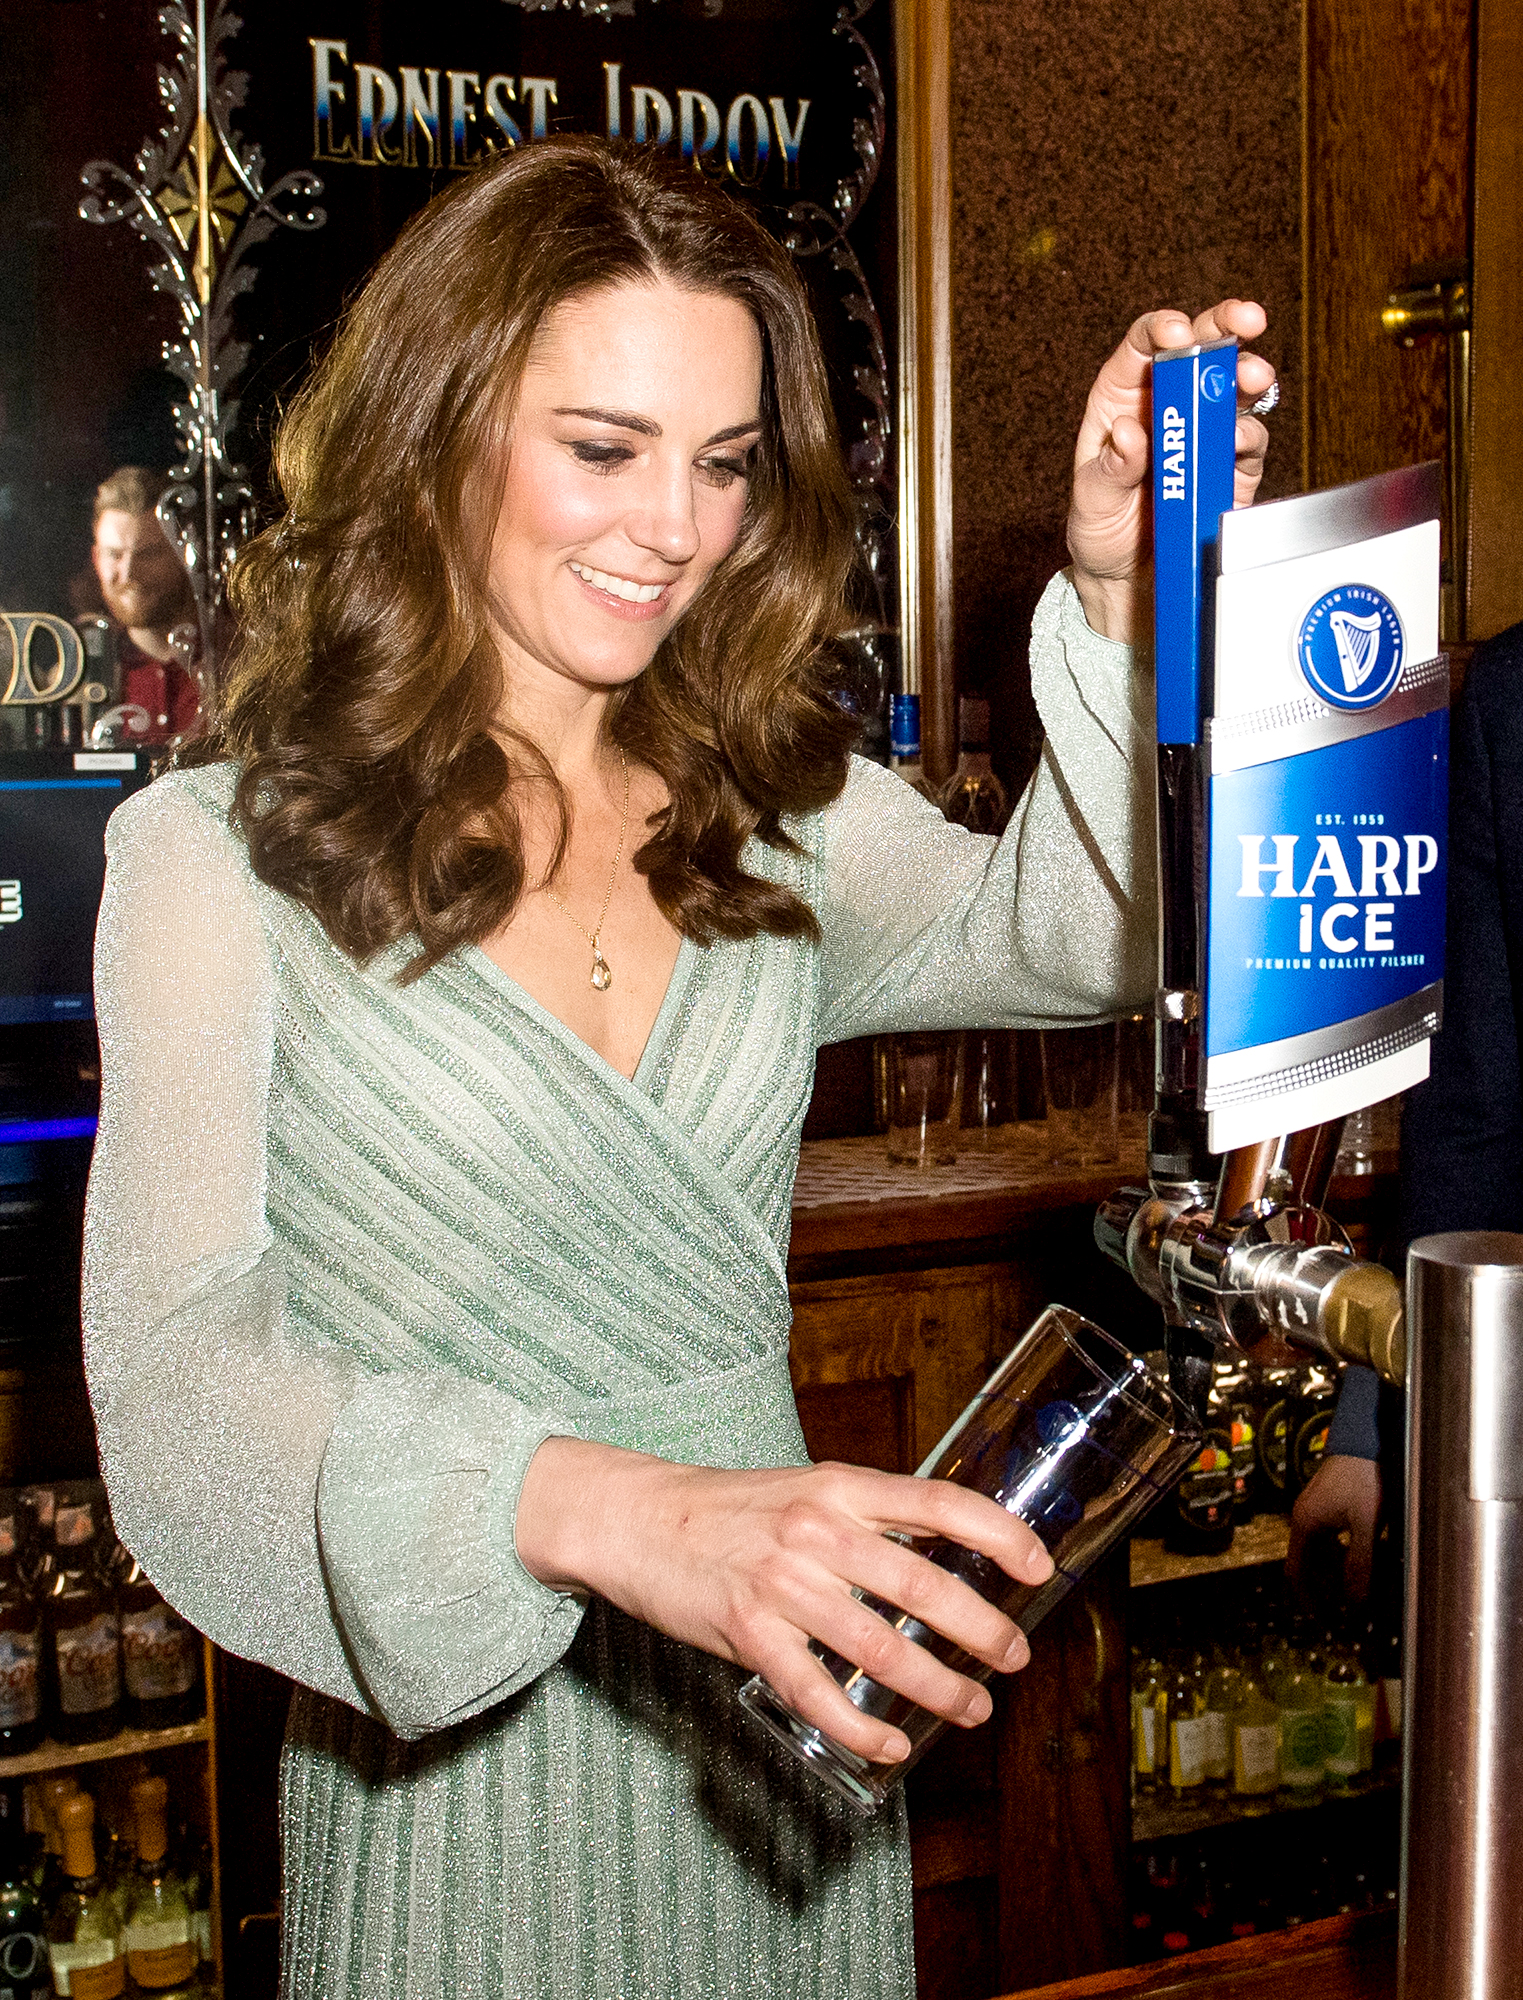 Stepping-Behind-the-Bar-duchess-kate - The Duchess of Cambridge opted to serve a beer instead of sip one during a visit to Empire Music Hall Belfast in Belfast, Northern Ireland. Believe it or not, the mother of three pulled a pint without getting any beer on her glittery green Missoni dress on February 27, 2019.